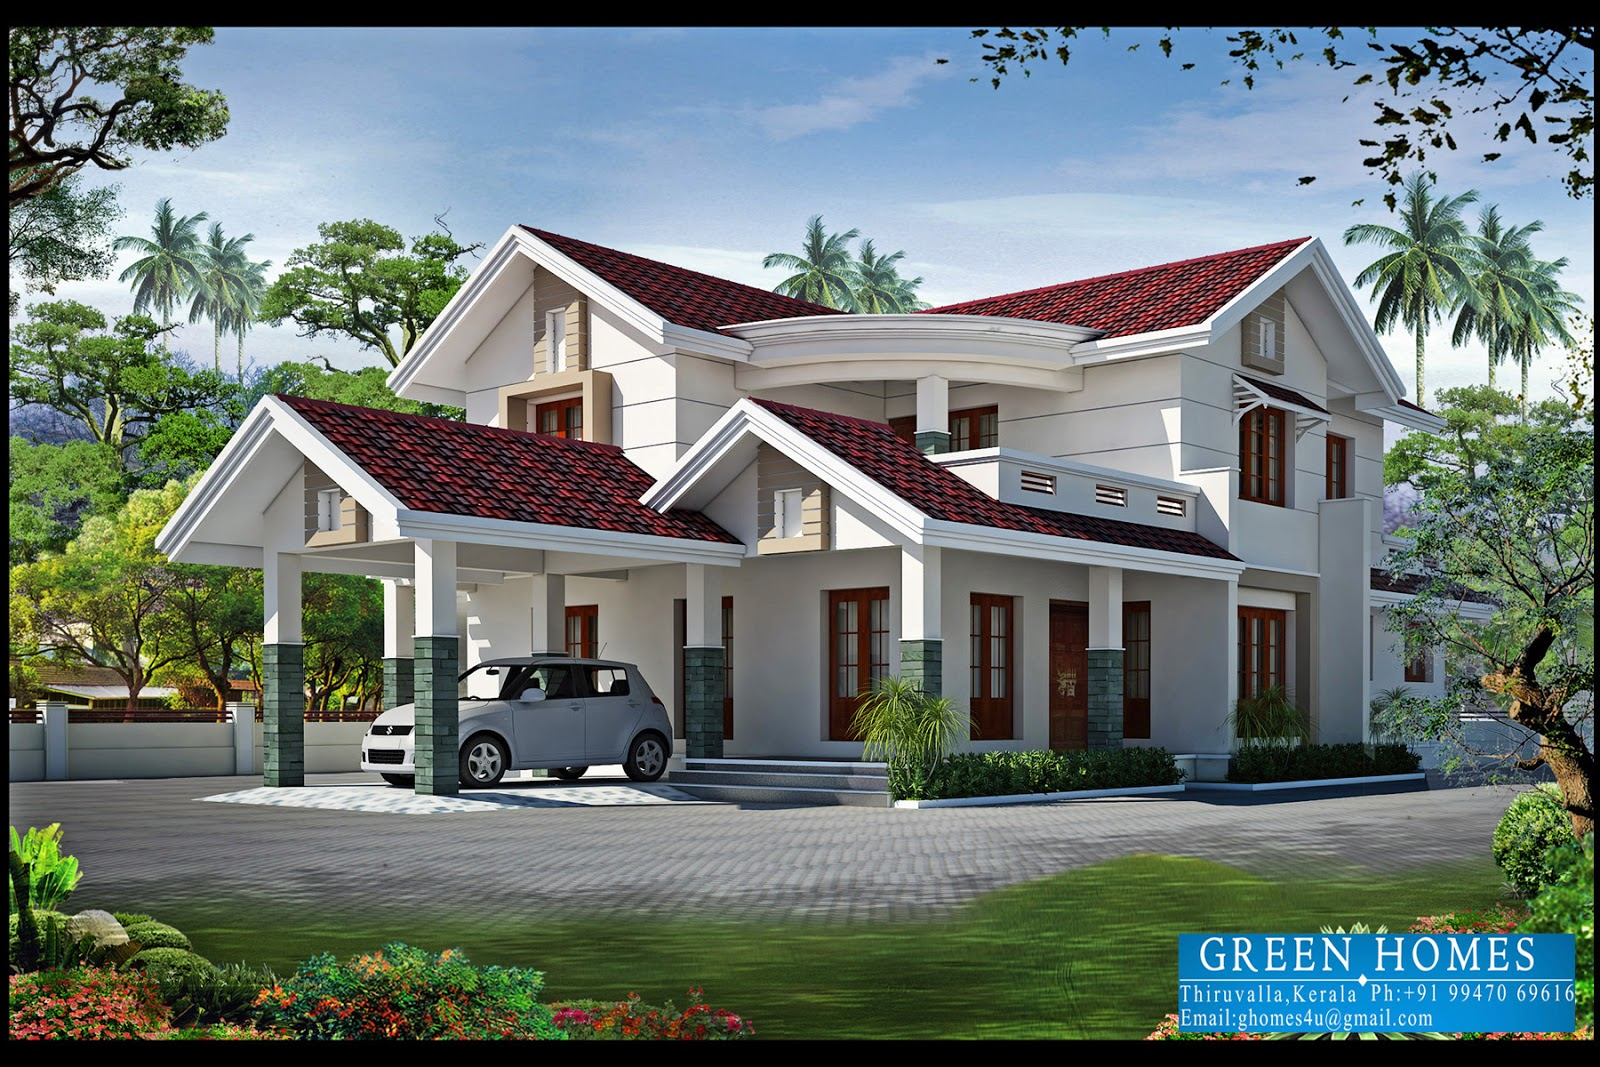 Green homes 4bhk kerala home design 2550 New home models